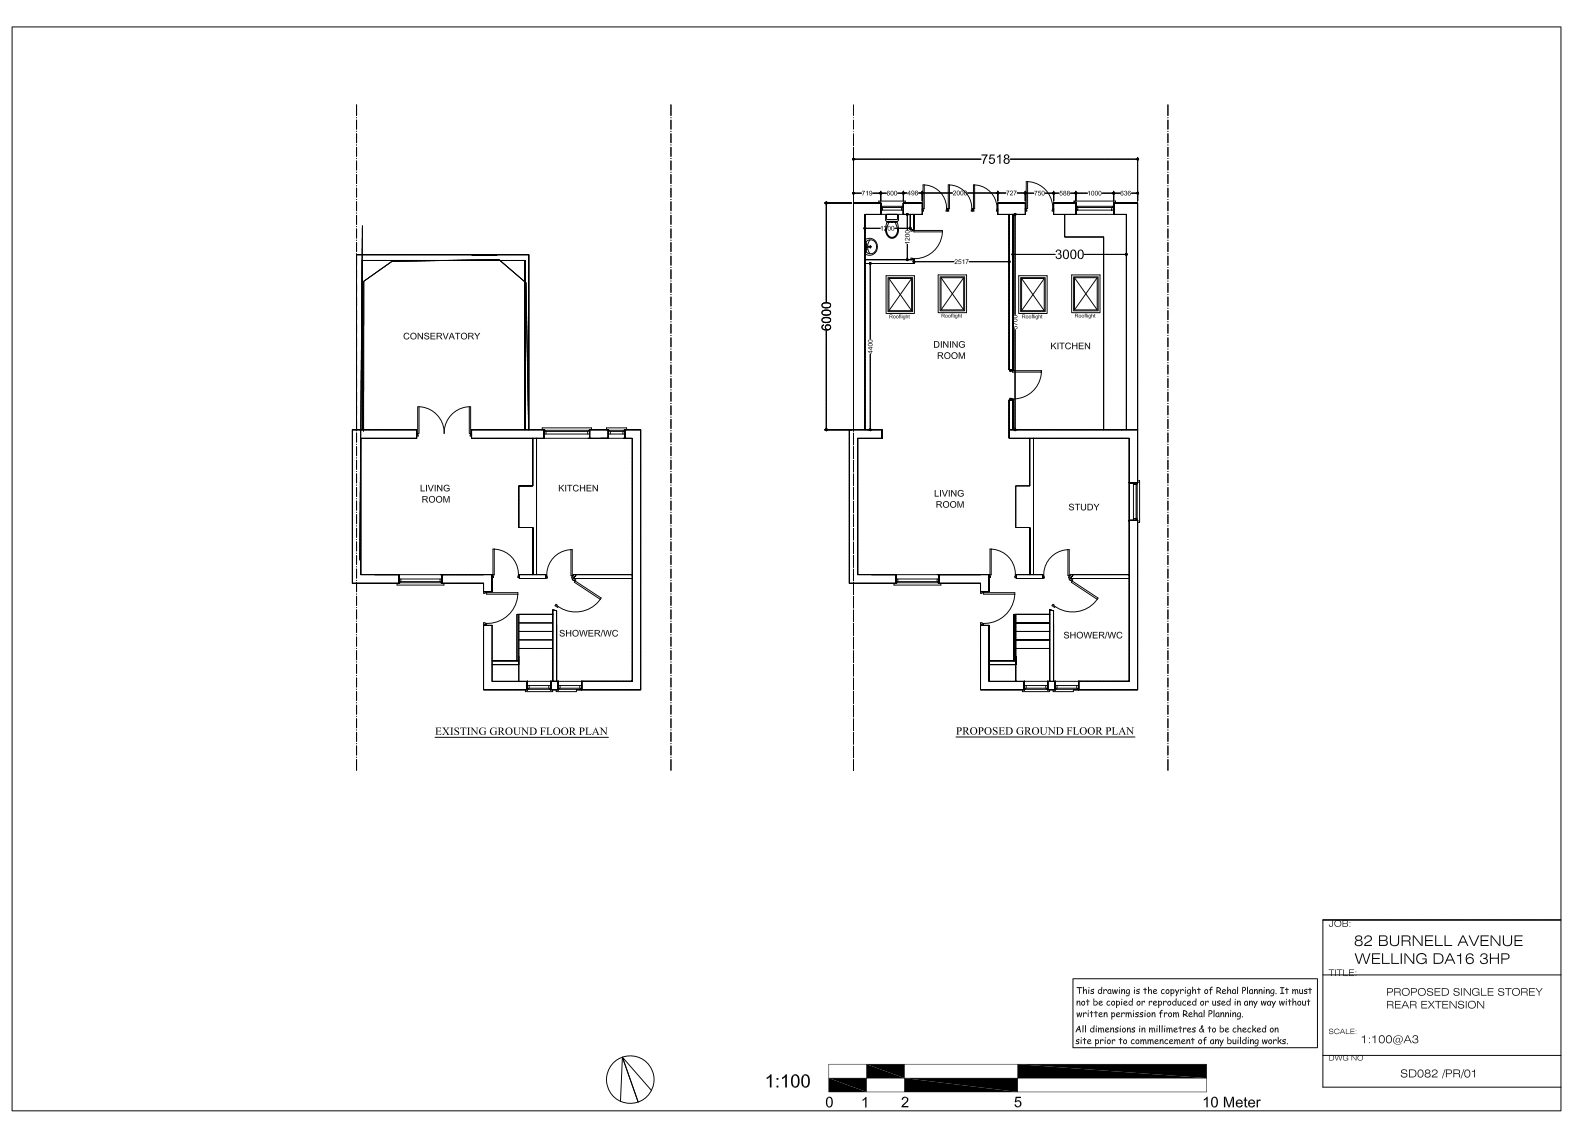 existing-and-proposed-ground-floor-plans-6-meter-deep-rear-extension